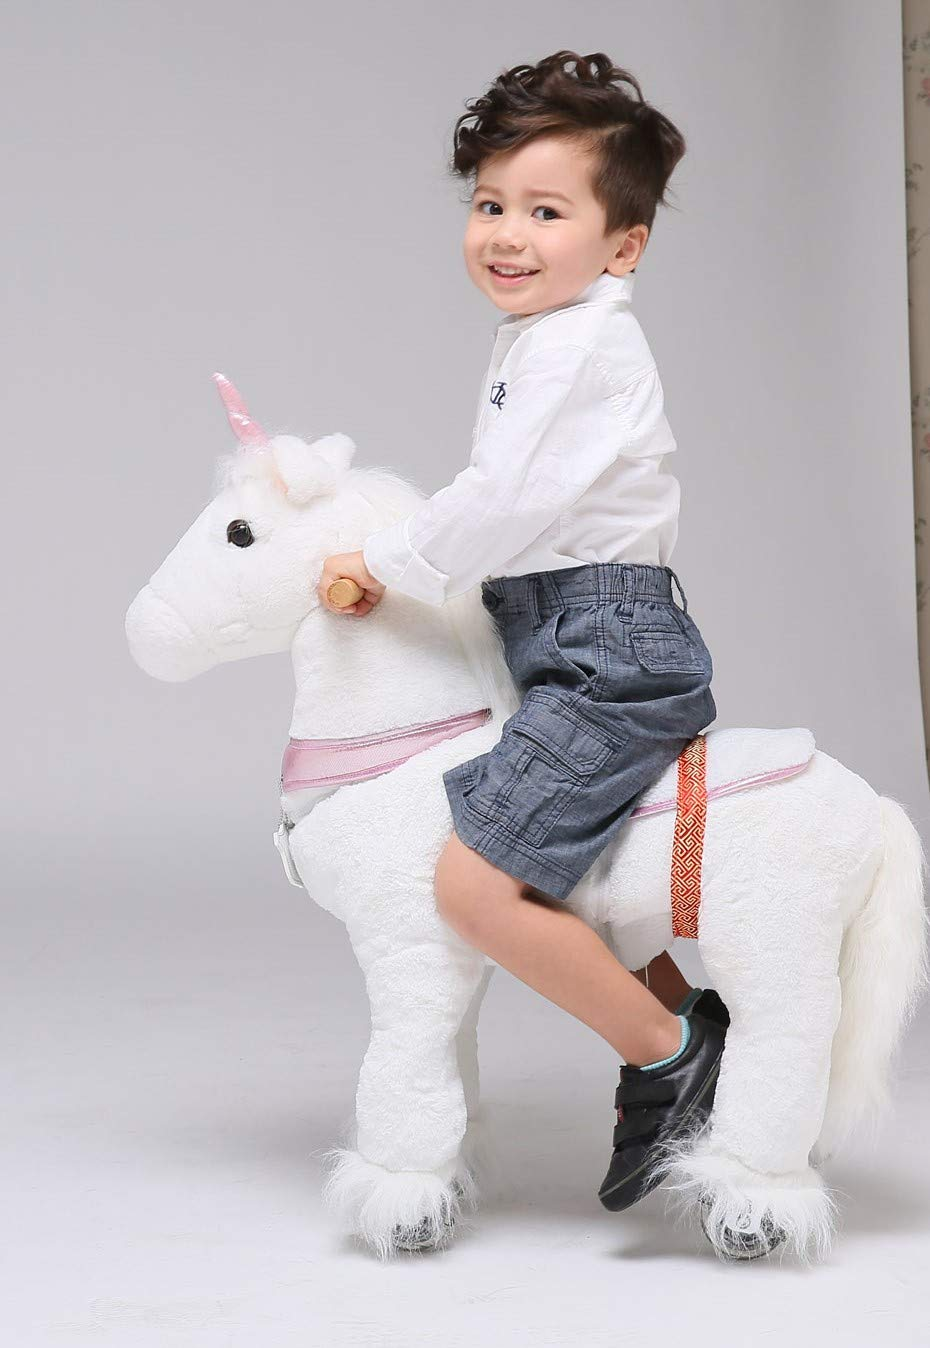 UFREE Horse Action Pony, Walking Horse Toy, Rocking Horse with Wheels Giddy up Ride on for Kids Aged 3 to 6 Years Old, Unicorn with Pink Horn